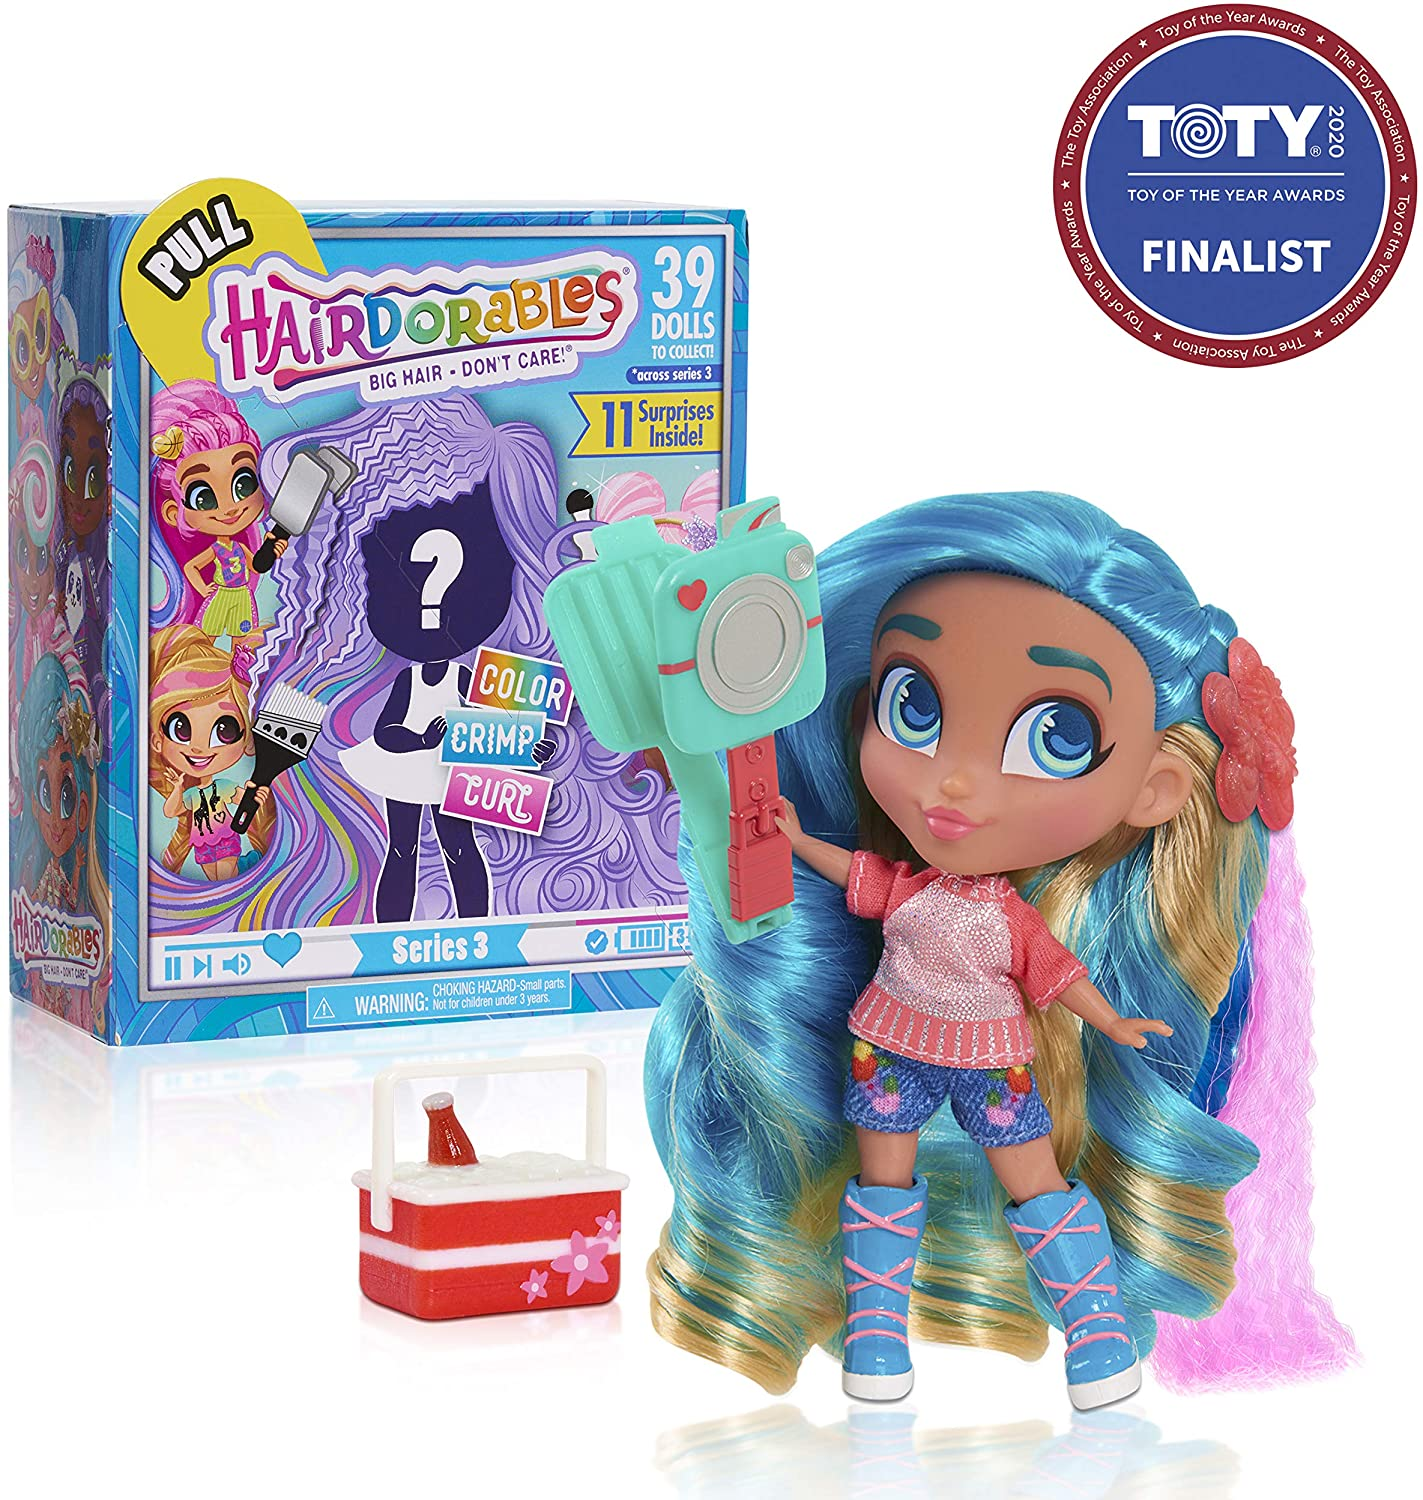 Review of Hairdorables Collectible Dolls Series 3